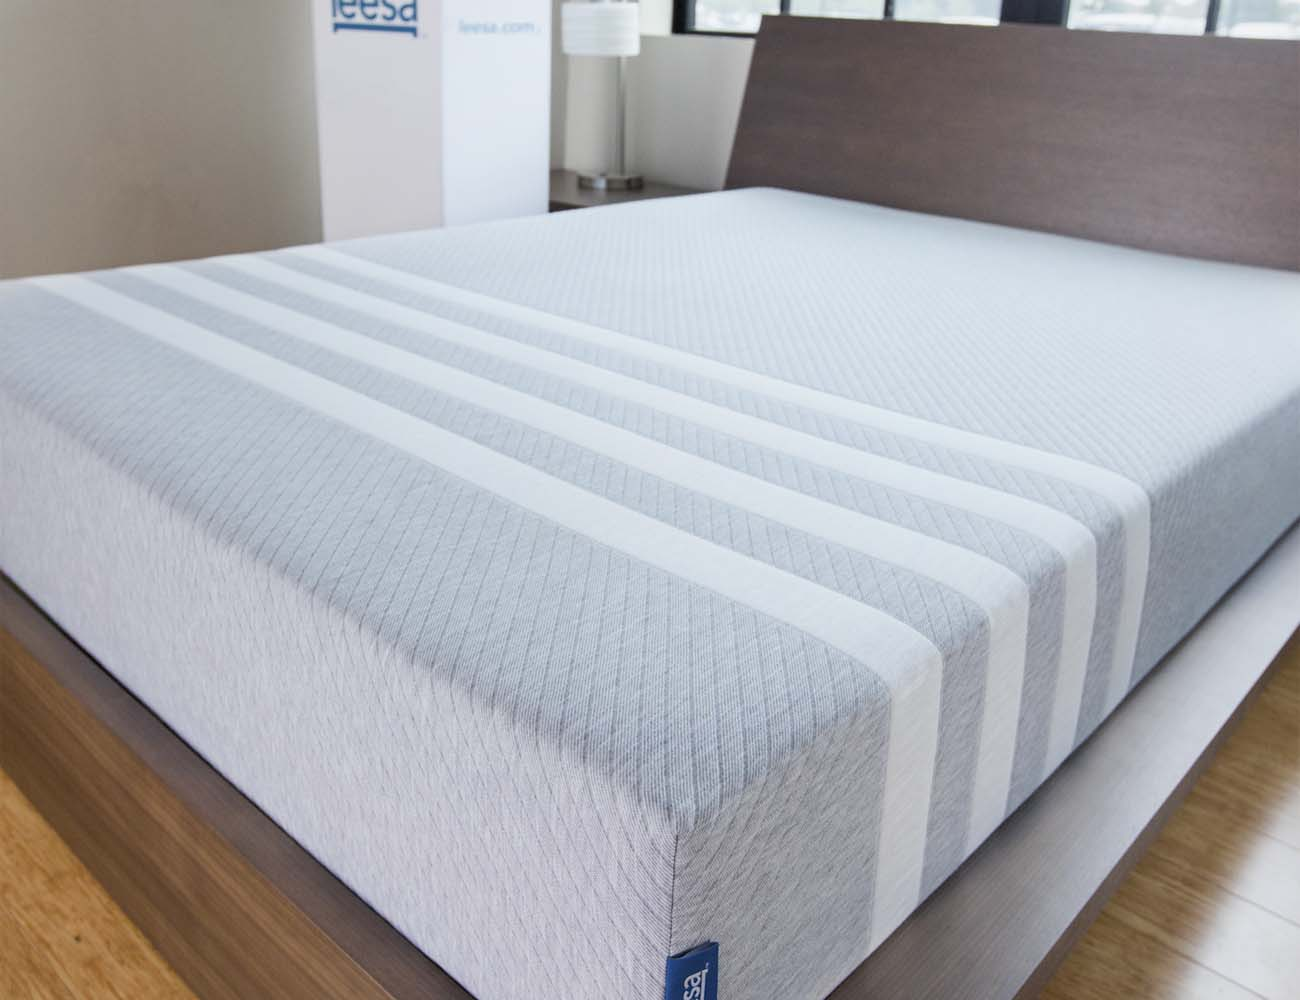 Leesa – A Mattress Redesigned